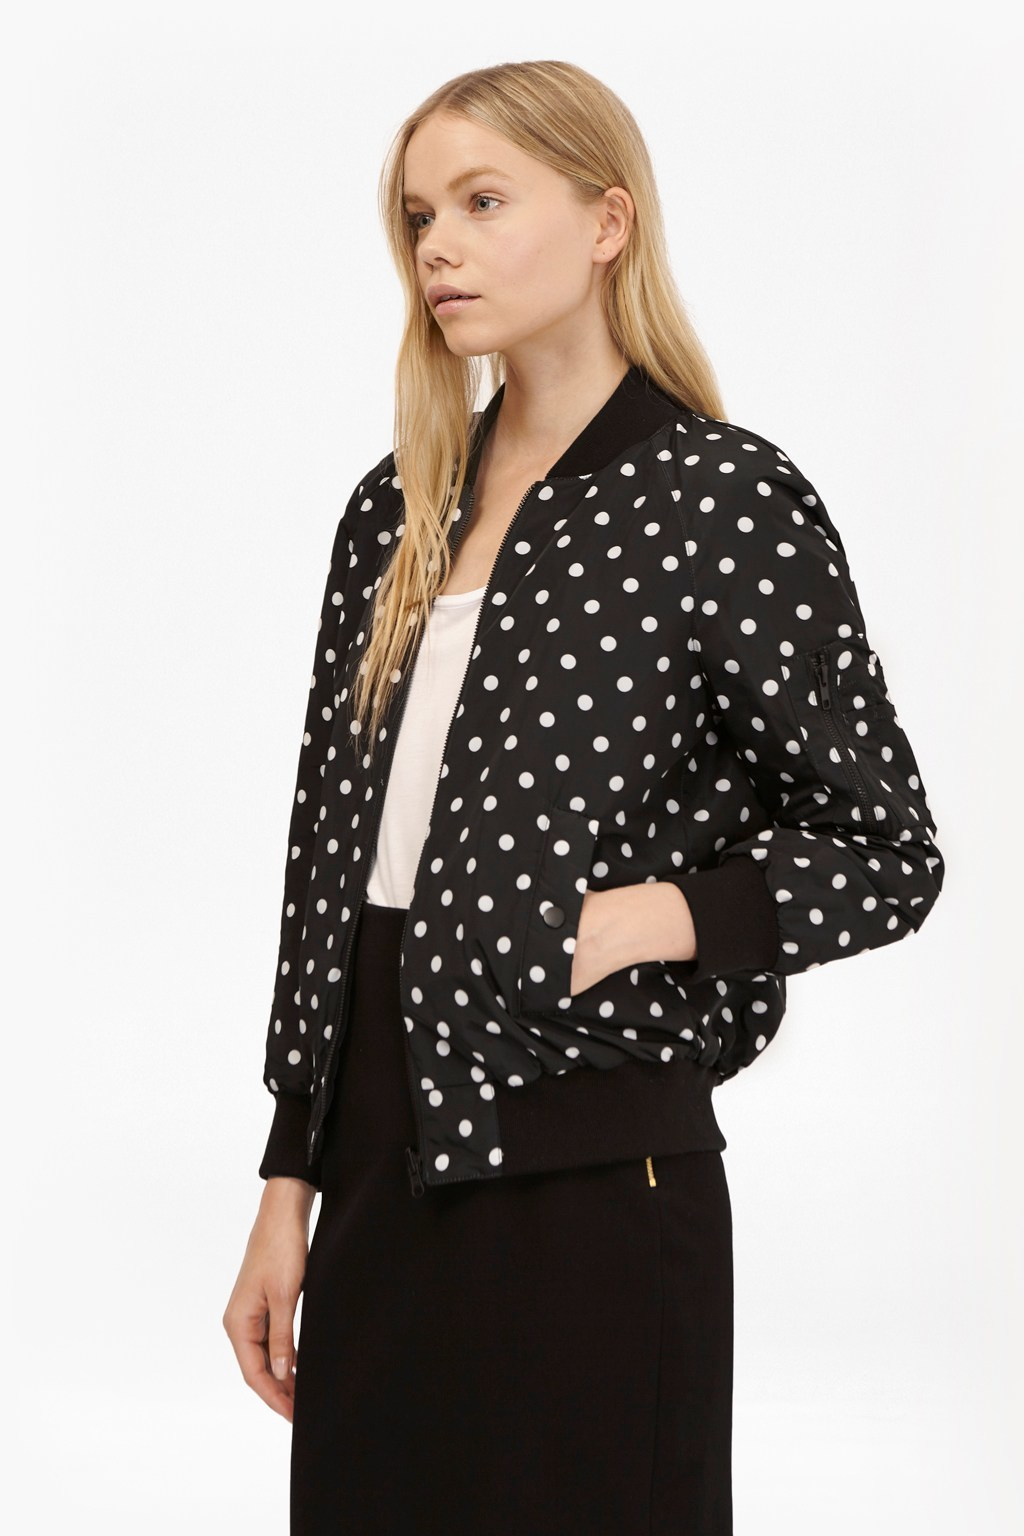 Dotty Spot Reversible Bomber Jacket Black/Winter White - style: single breasted blazer; collar: round collar/collarless; fit: loose; secondary colour: white; predominant colour: black; occasions: casual, creative work; length: standard; fibres: polyester/polyamide - 100%; sleeve length: long sleeve; sleeve style: standard; trends: monochrome; collar break: high; pattern type: fabric; pattern: patterned/print; texture group: other - light to midweight; season: s/s 2016; wardrobe: highlight